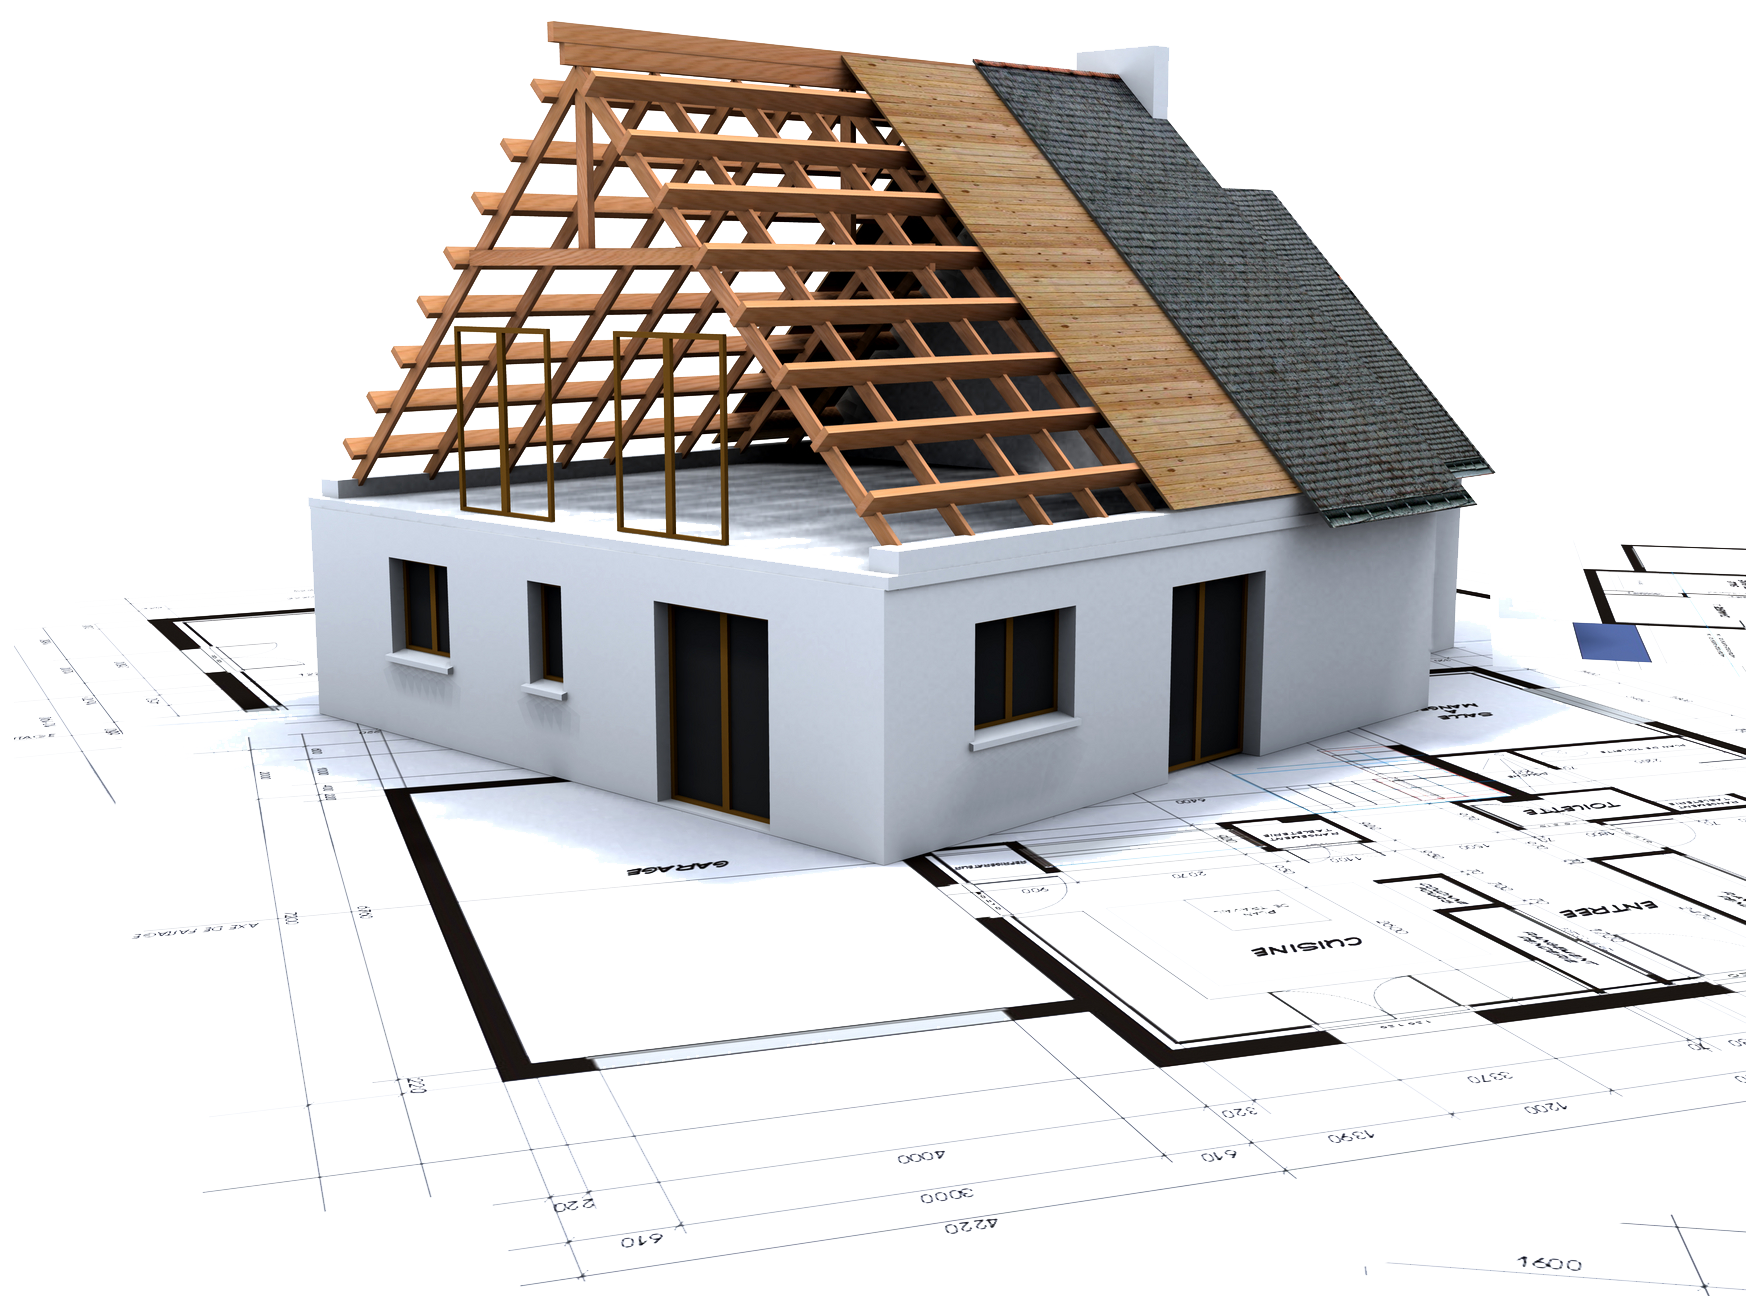 collection of building. House image png